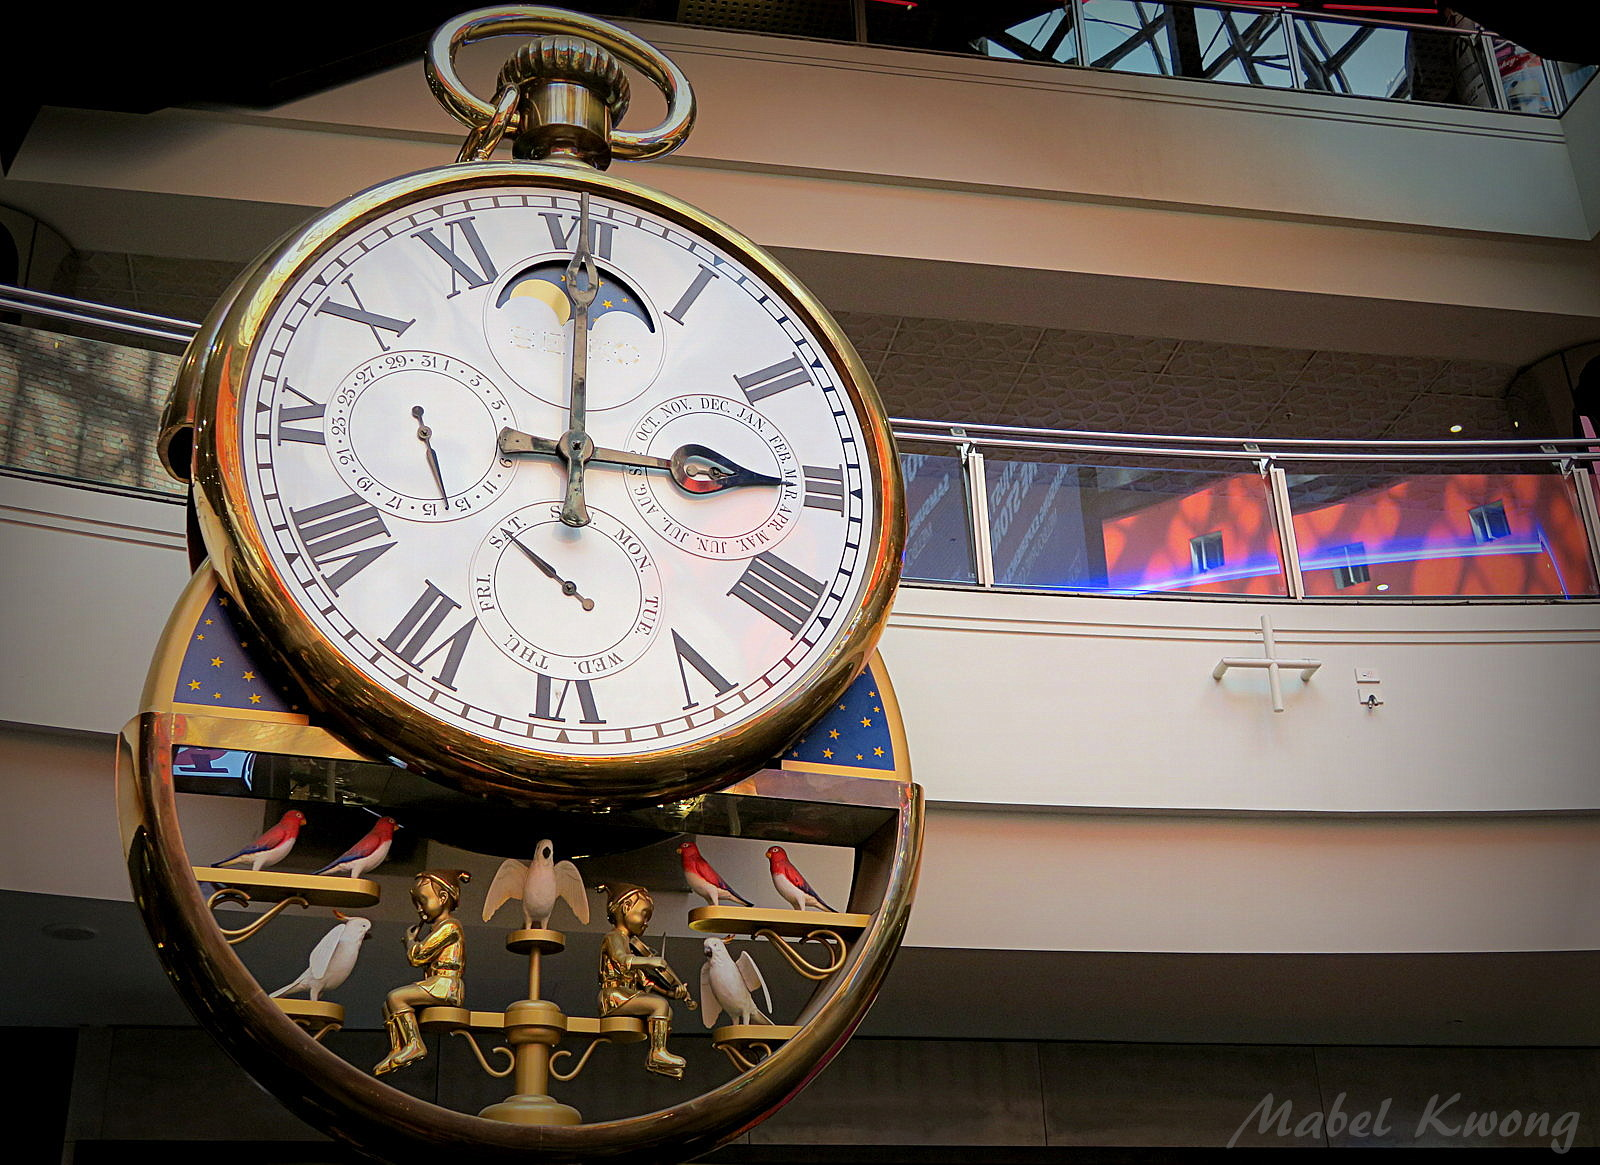 Wall Clock Melbourne Melbourne Central Clock Mabel Kwong